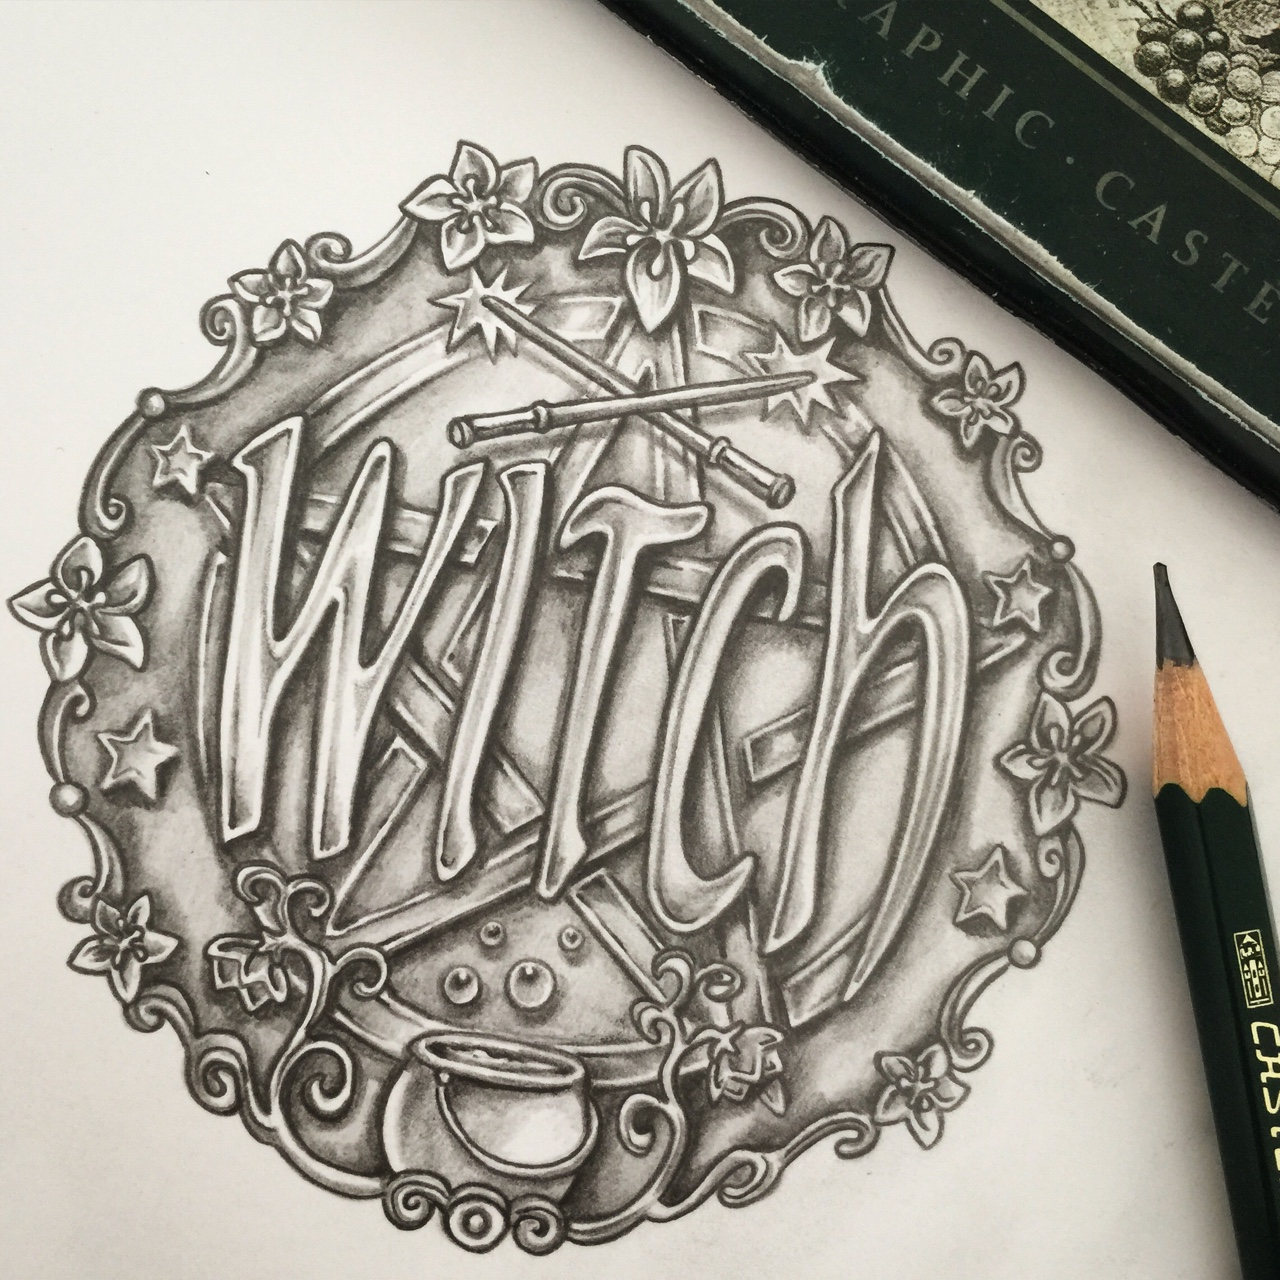 'Witch' button design.